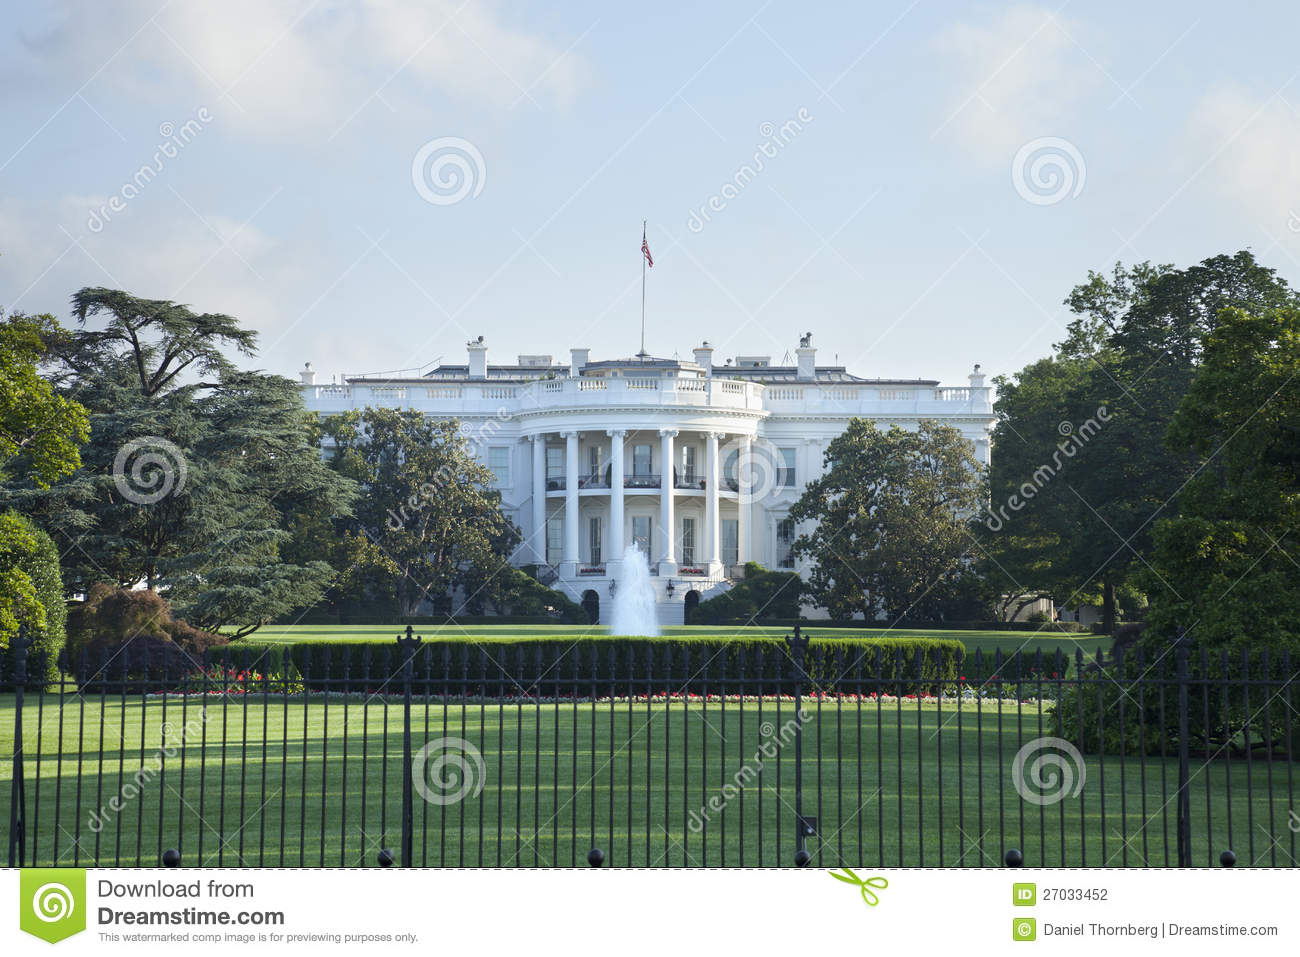 The White House in Washington DC viewed from the south side.